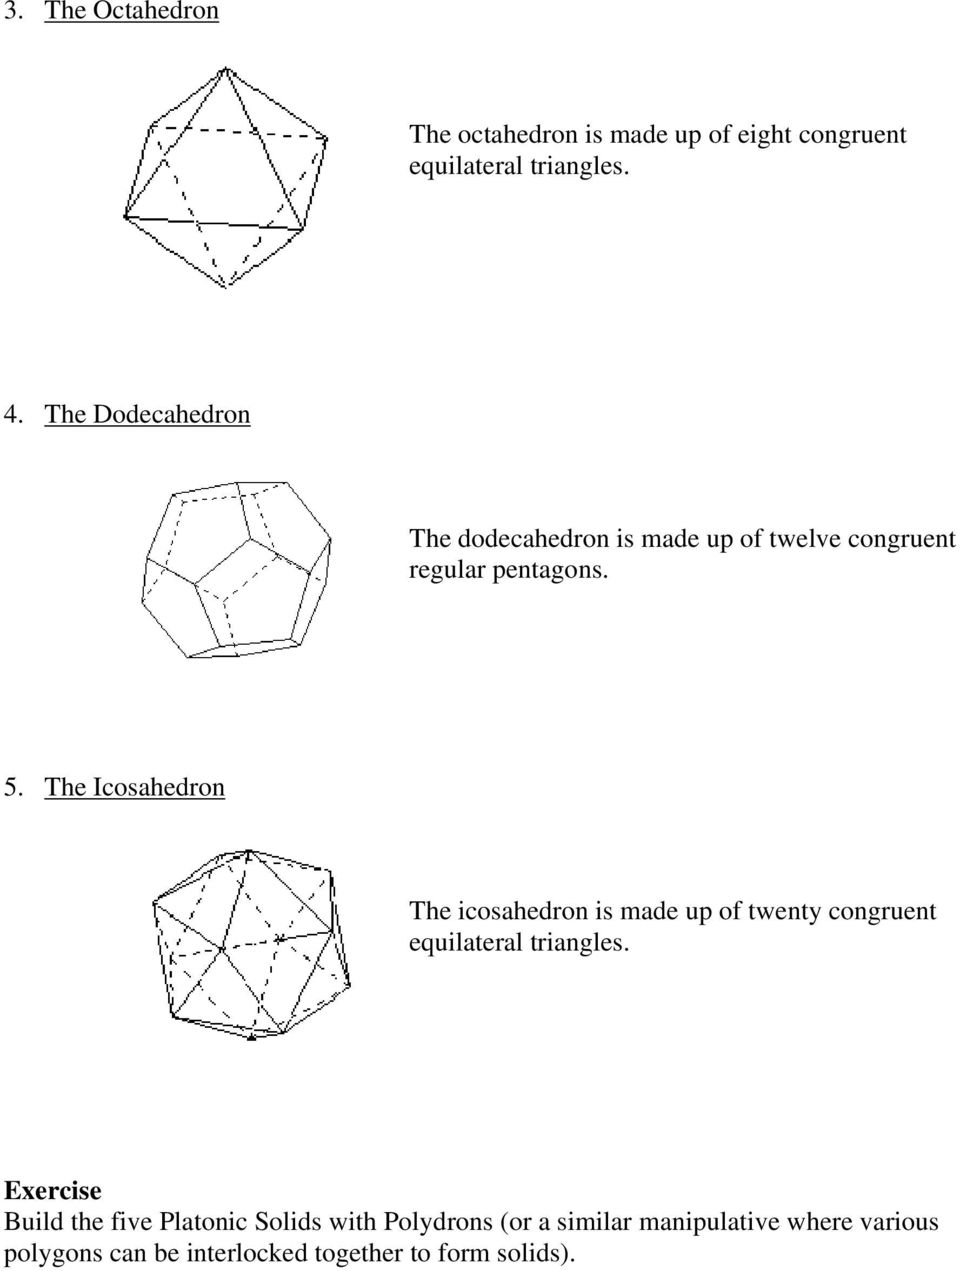 The Icosahedron The icosahedron is made up of twenty congruent equilateral triangles.